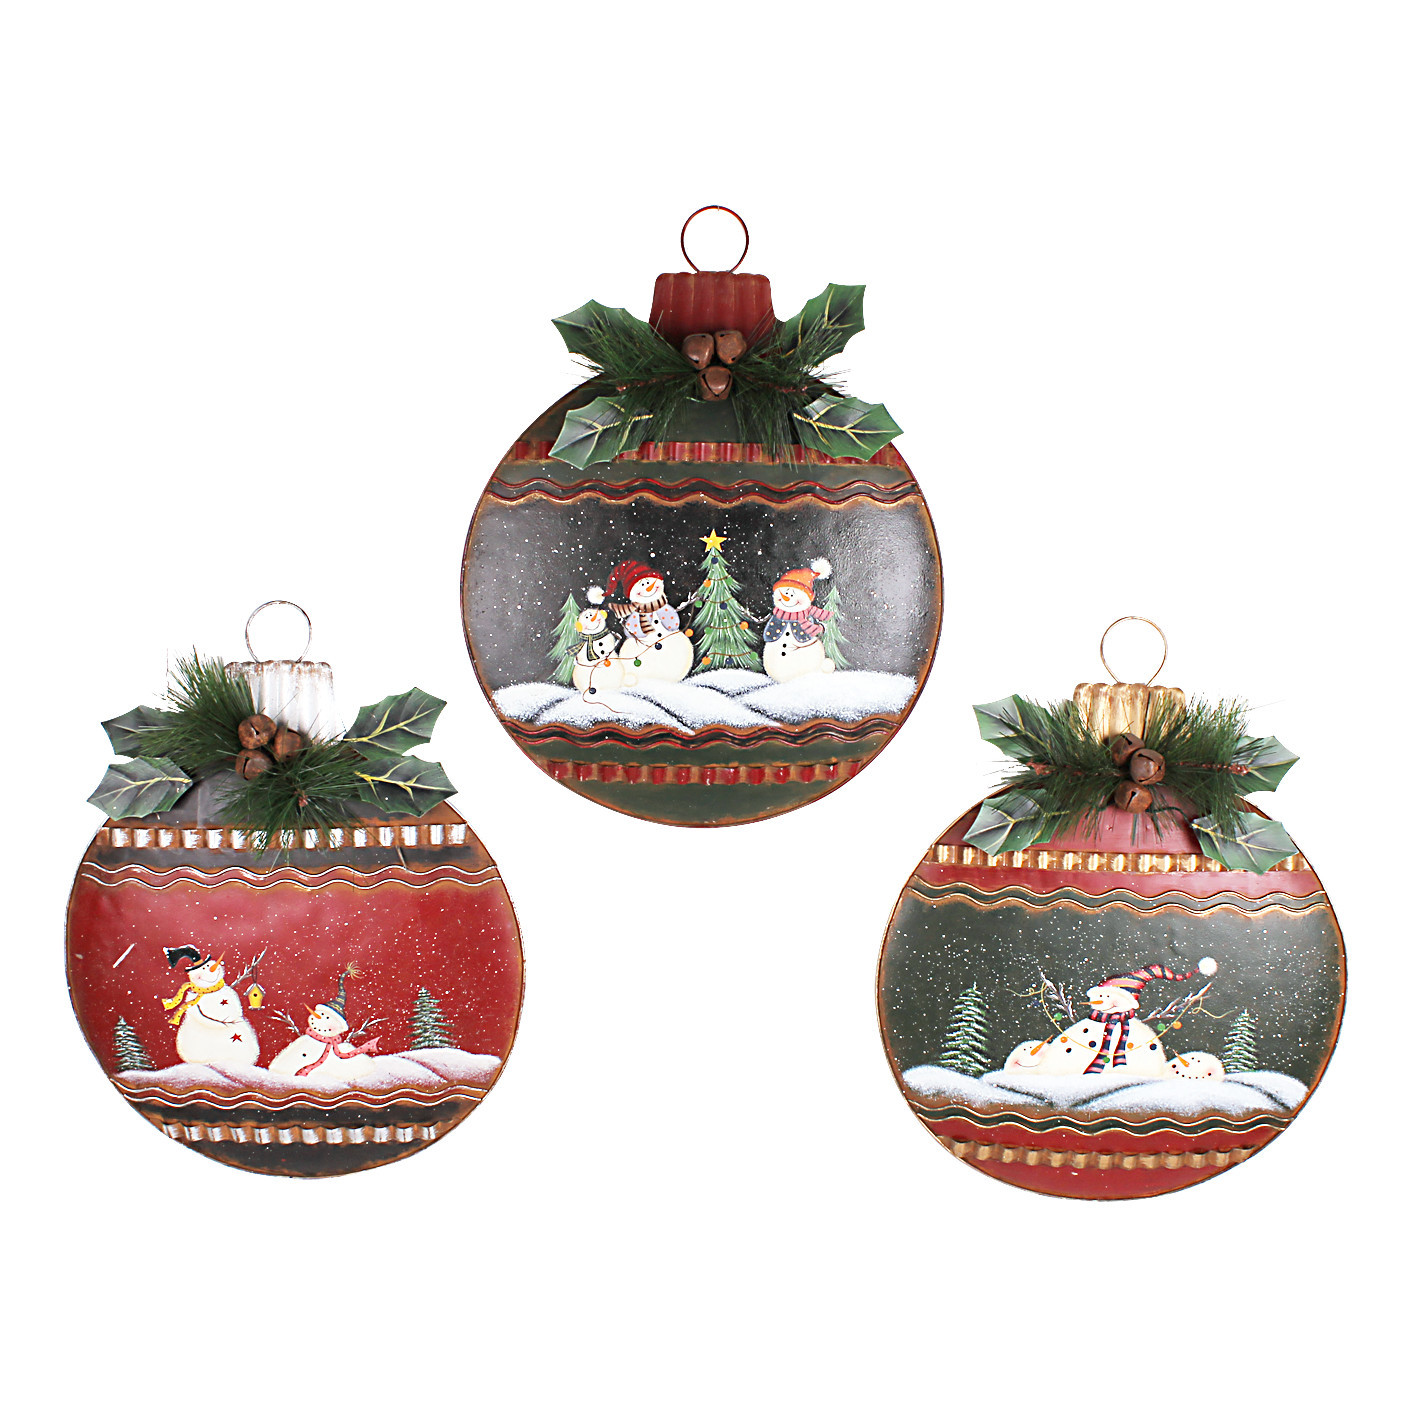 Christmas ornament Sets Unique attractiondesignhome Christmas Hanging 3 Piece Of Fresh 41 Models Christmas ornament Sets